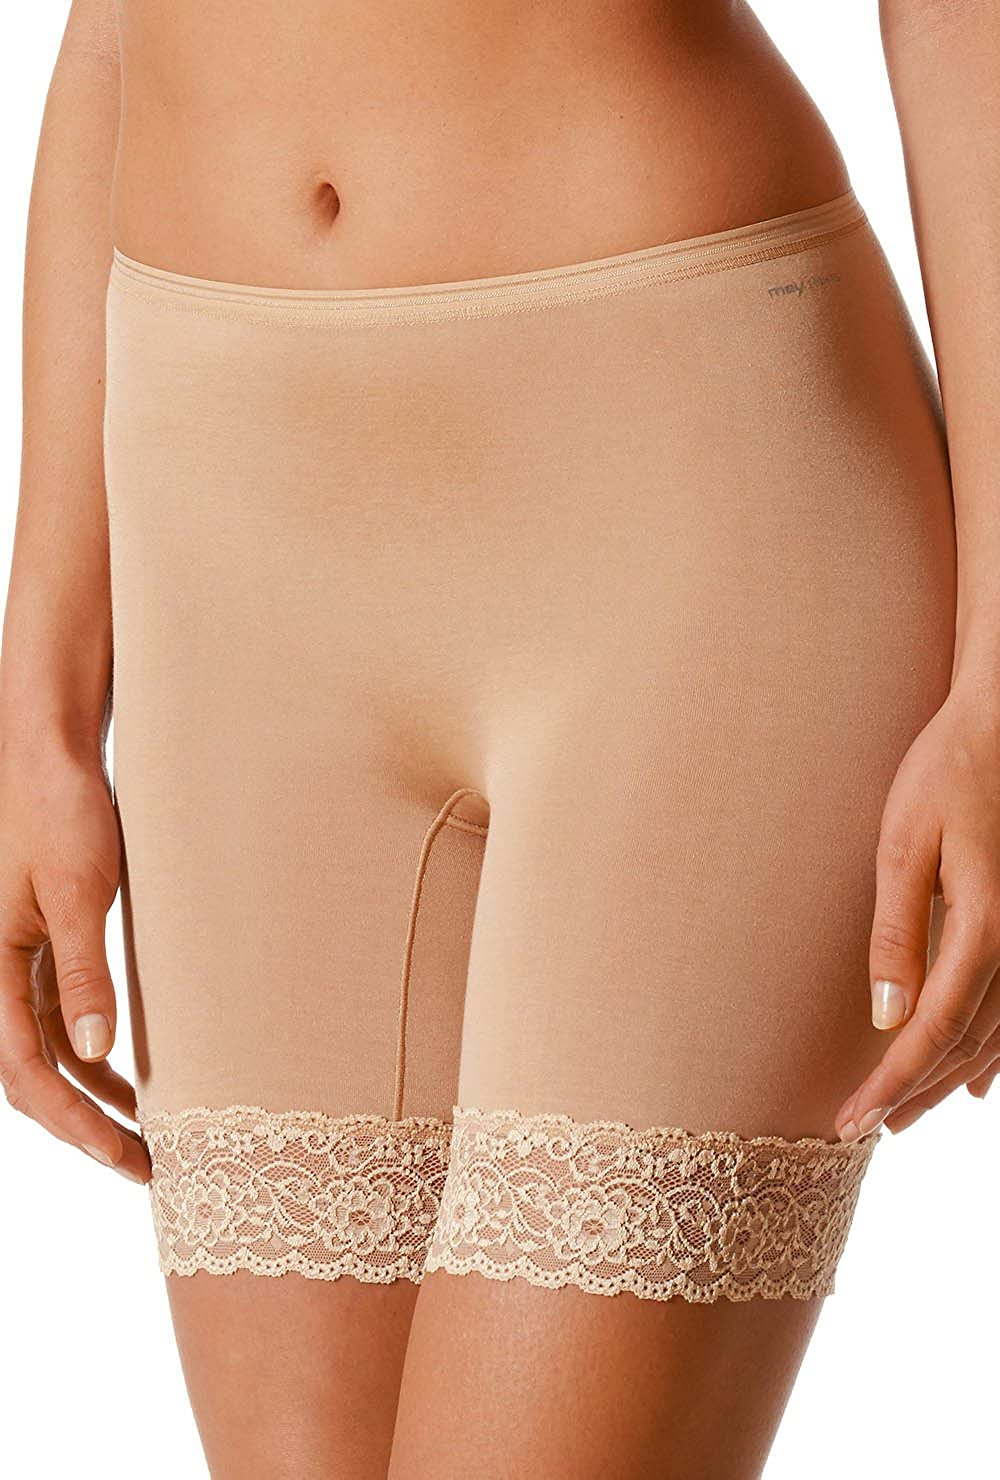 Mey 88210-7 Womens Soft Skin Solid Colour French Knickers